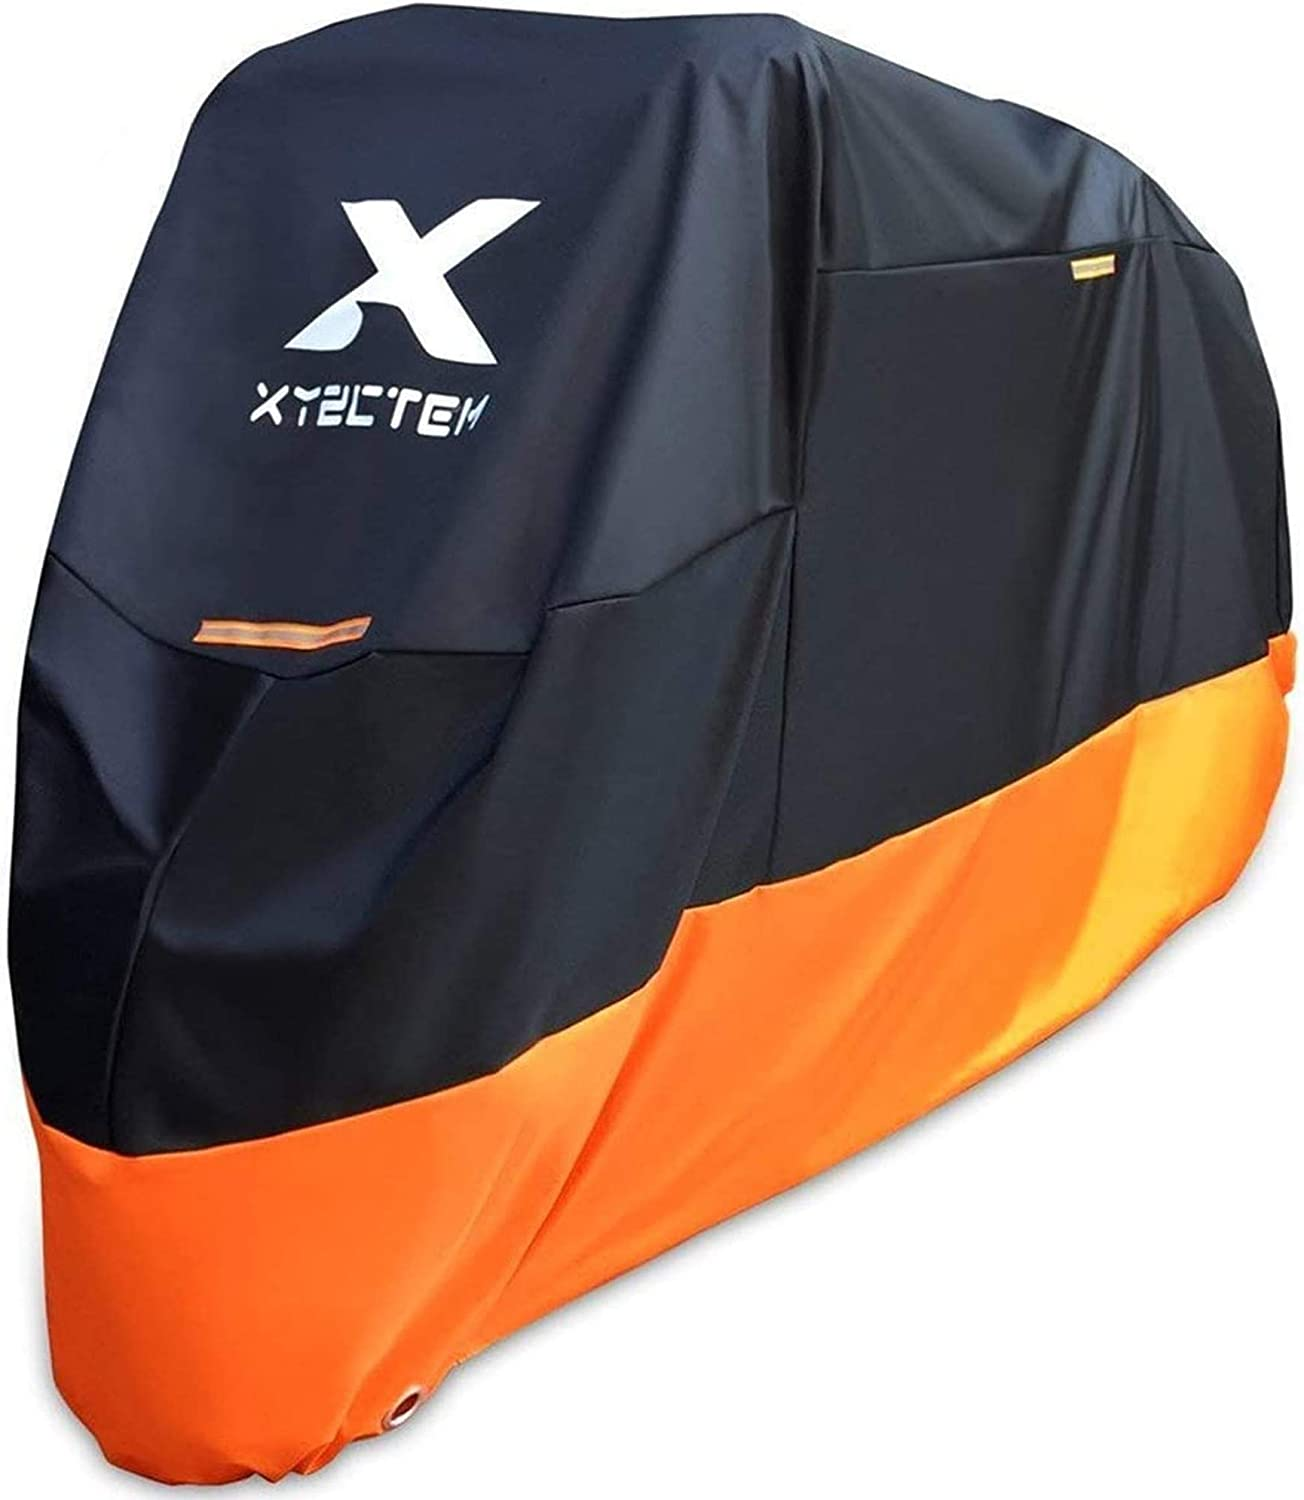 XYZCTEM Motorcycle Cover – All Season Waterproof Outdoor Protection